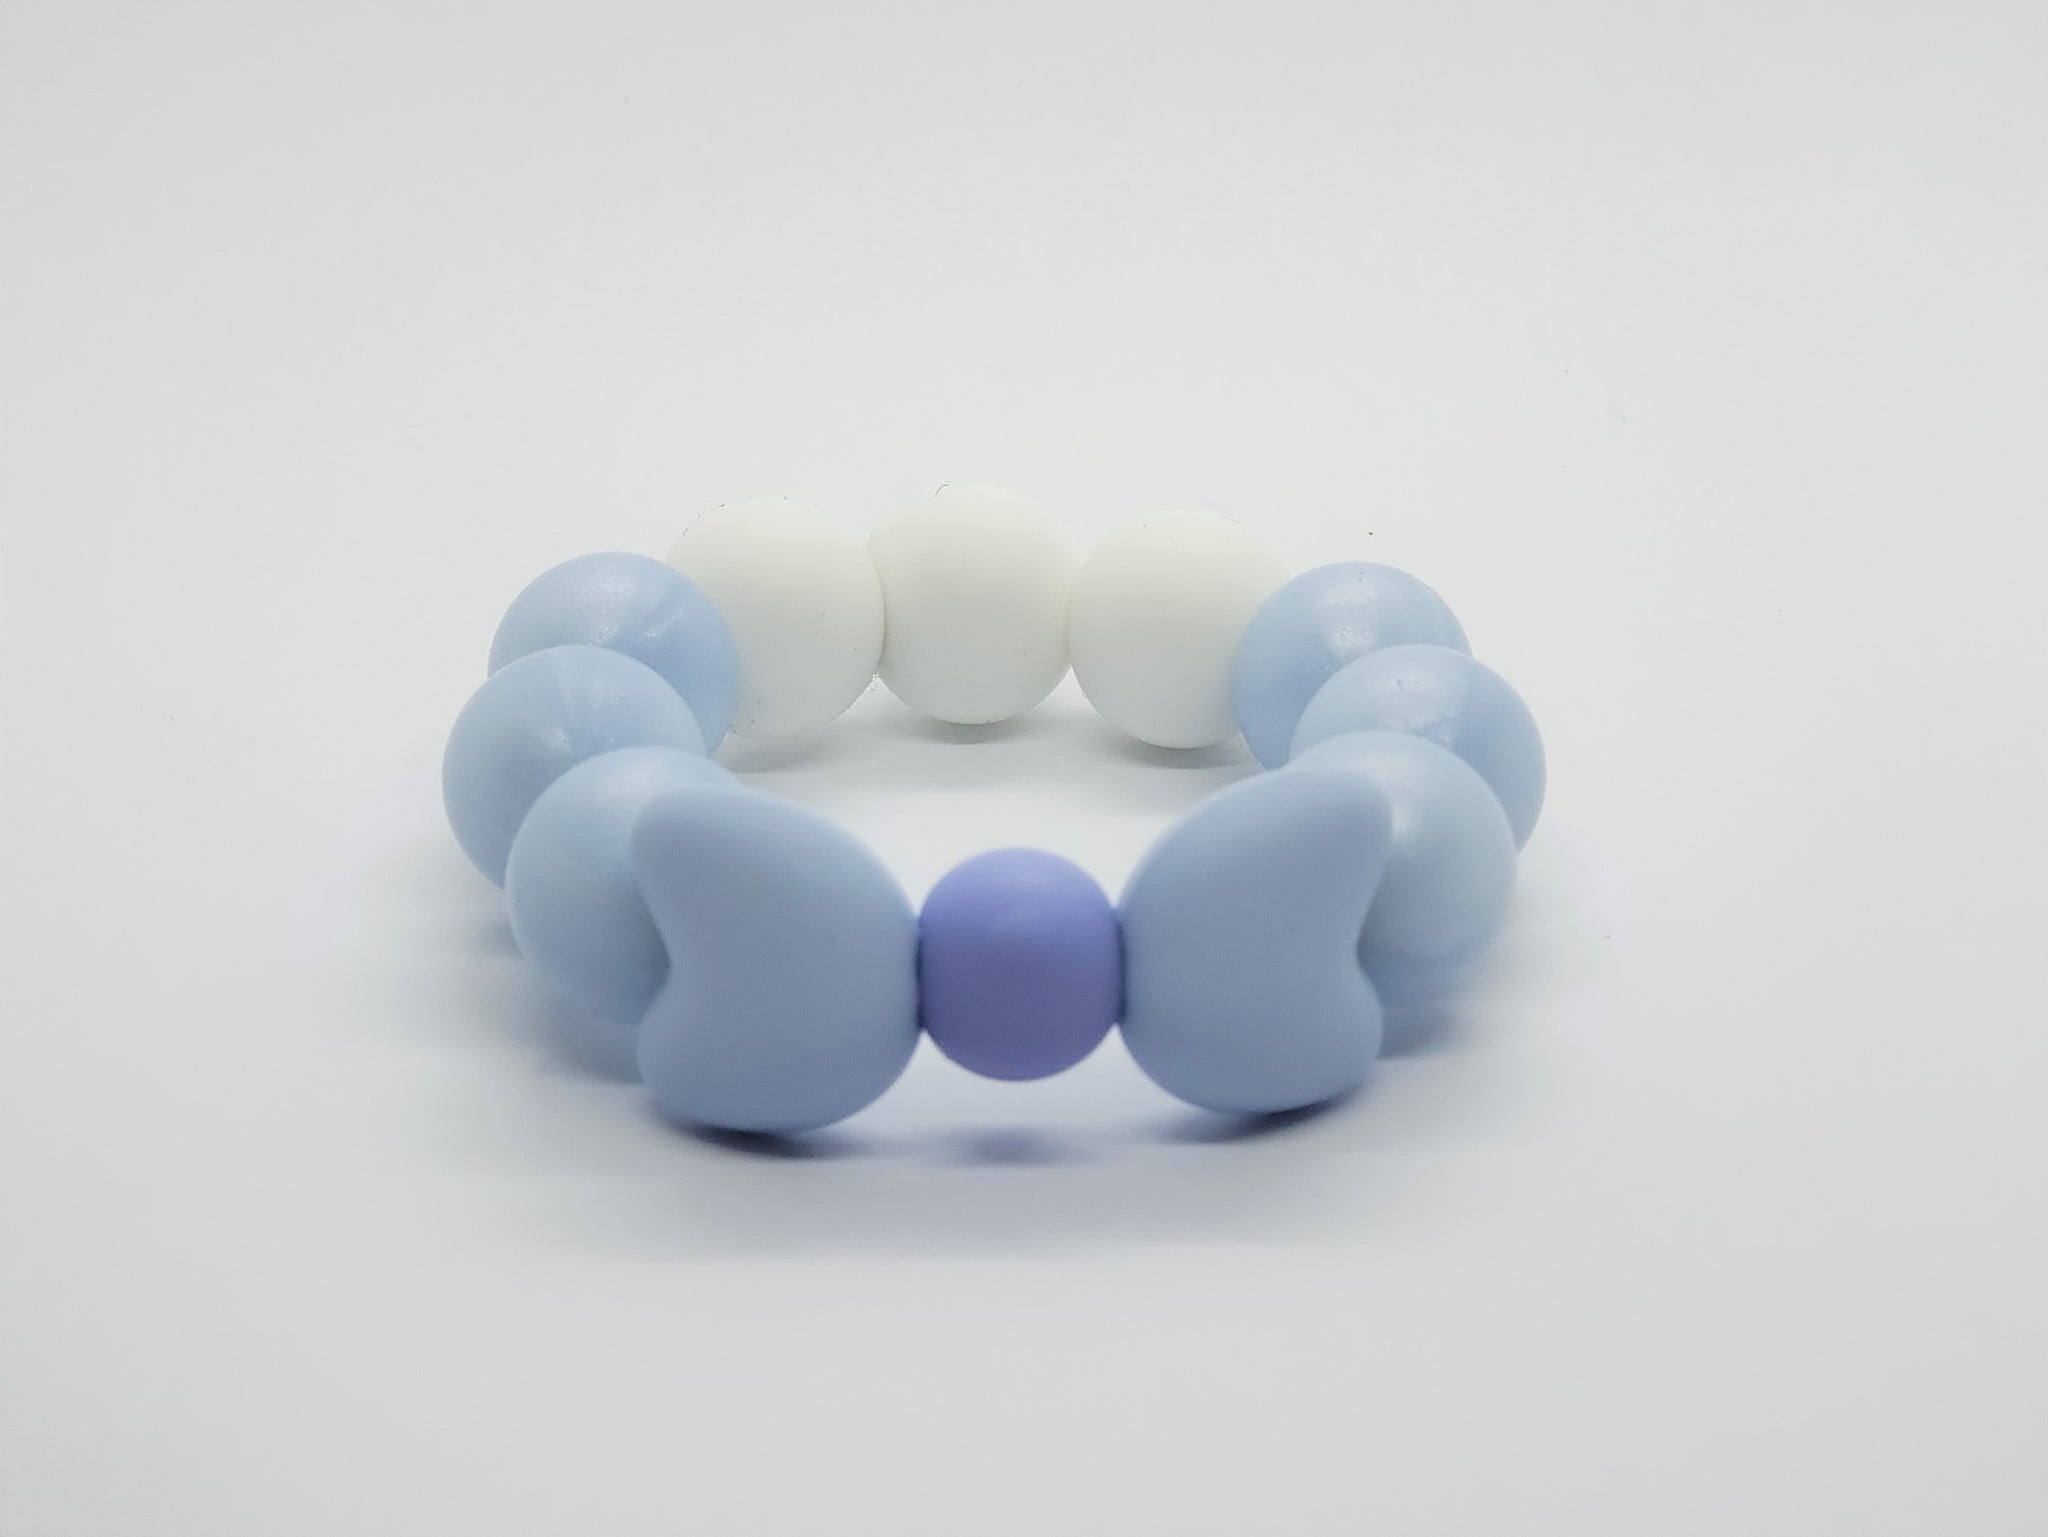 Silicone Teether Bracelet with Bows - Petite - Baby Blue